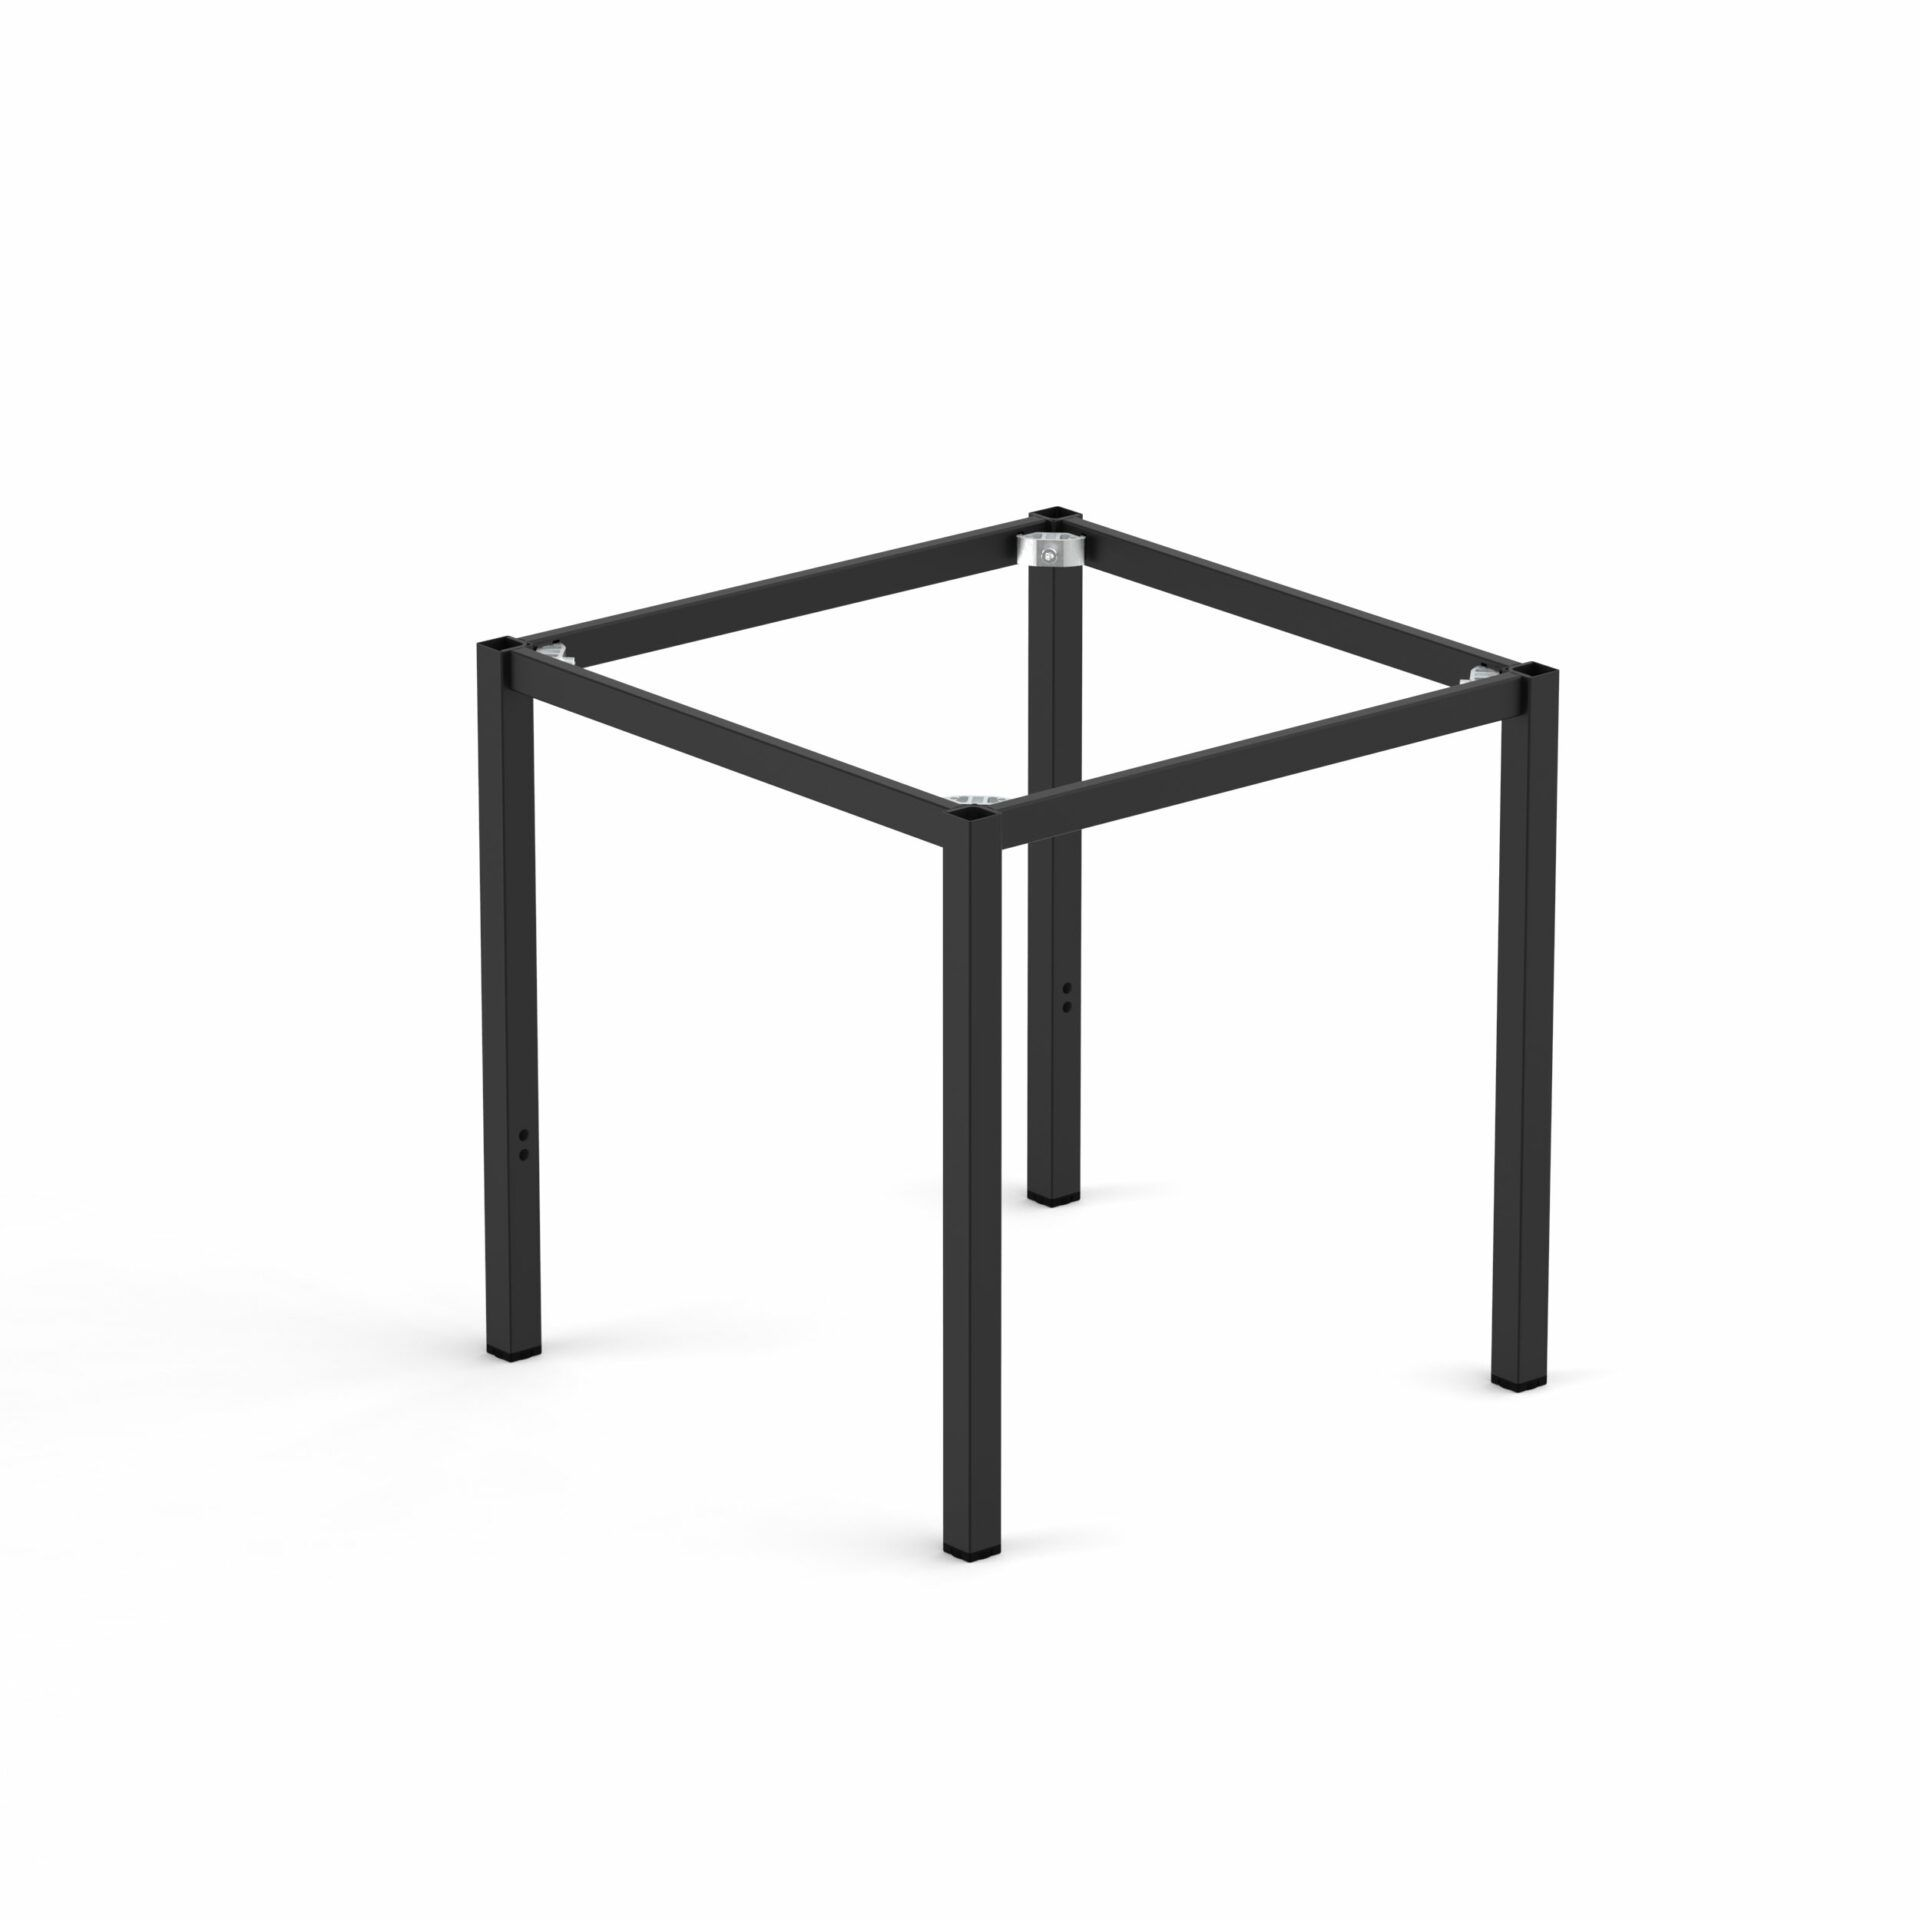 Spire Square leg Table Height Frame 740 x 740 x 720H